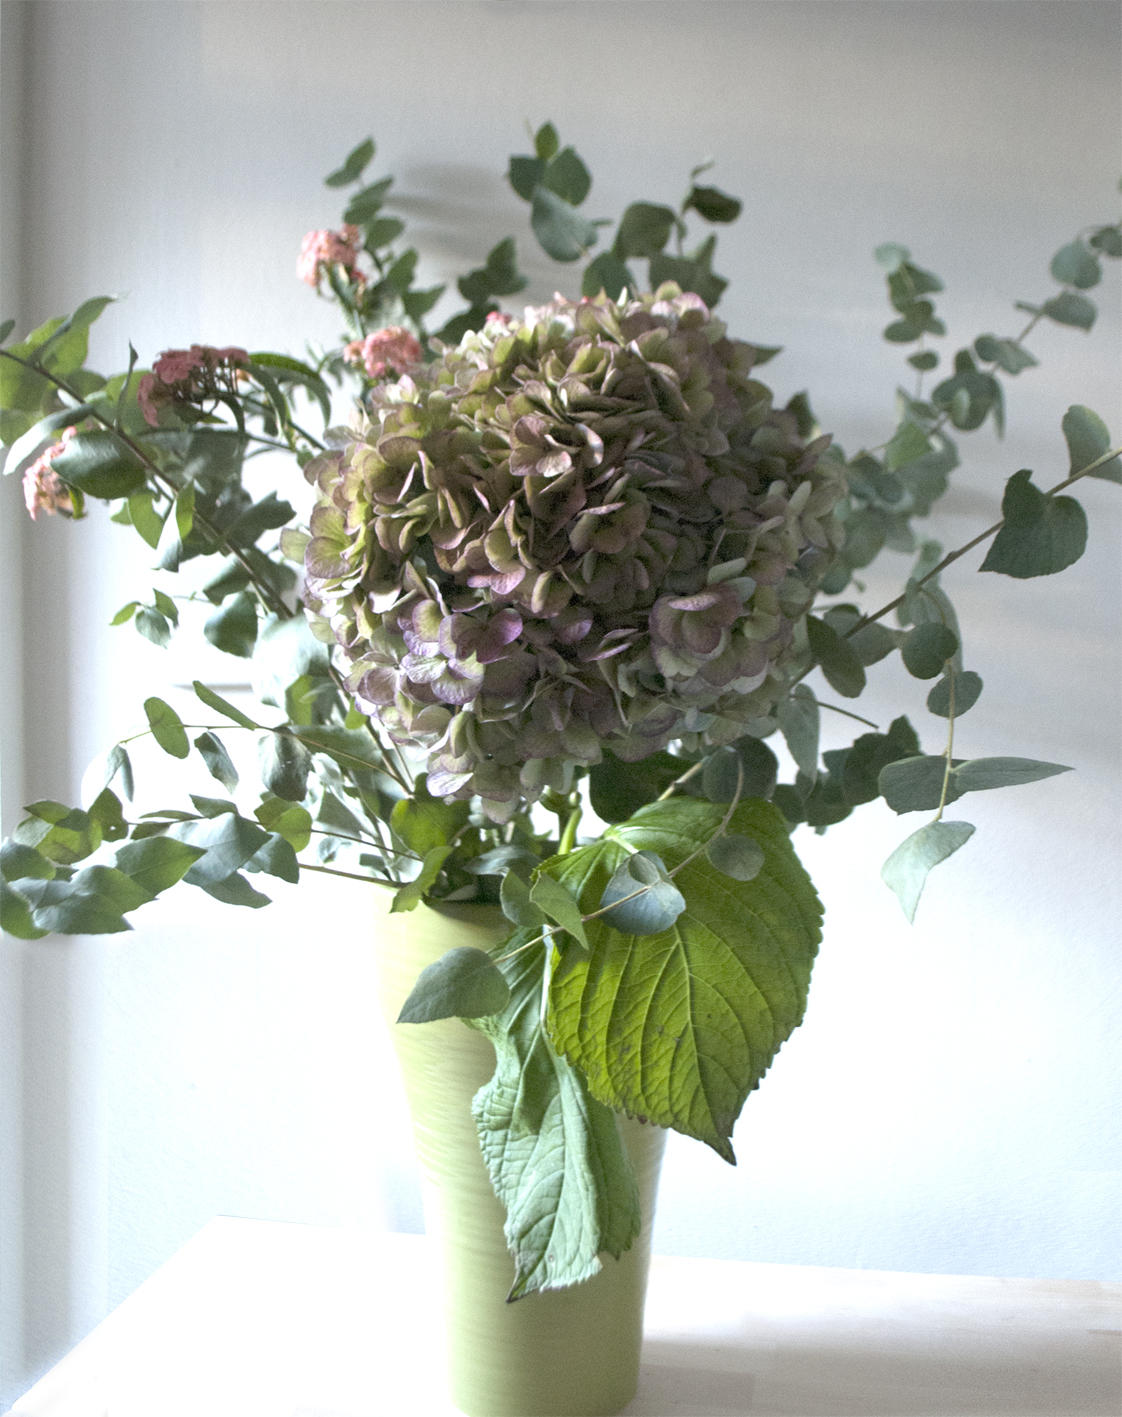 My attempt at a Grace & Thorn style arrangement - I think it probably needs a lot more foliage!